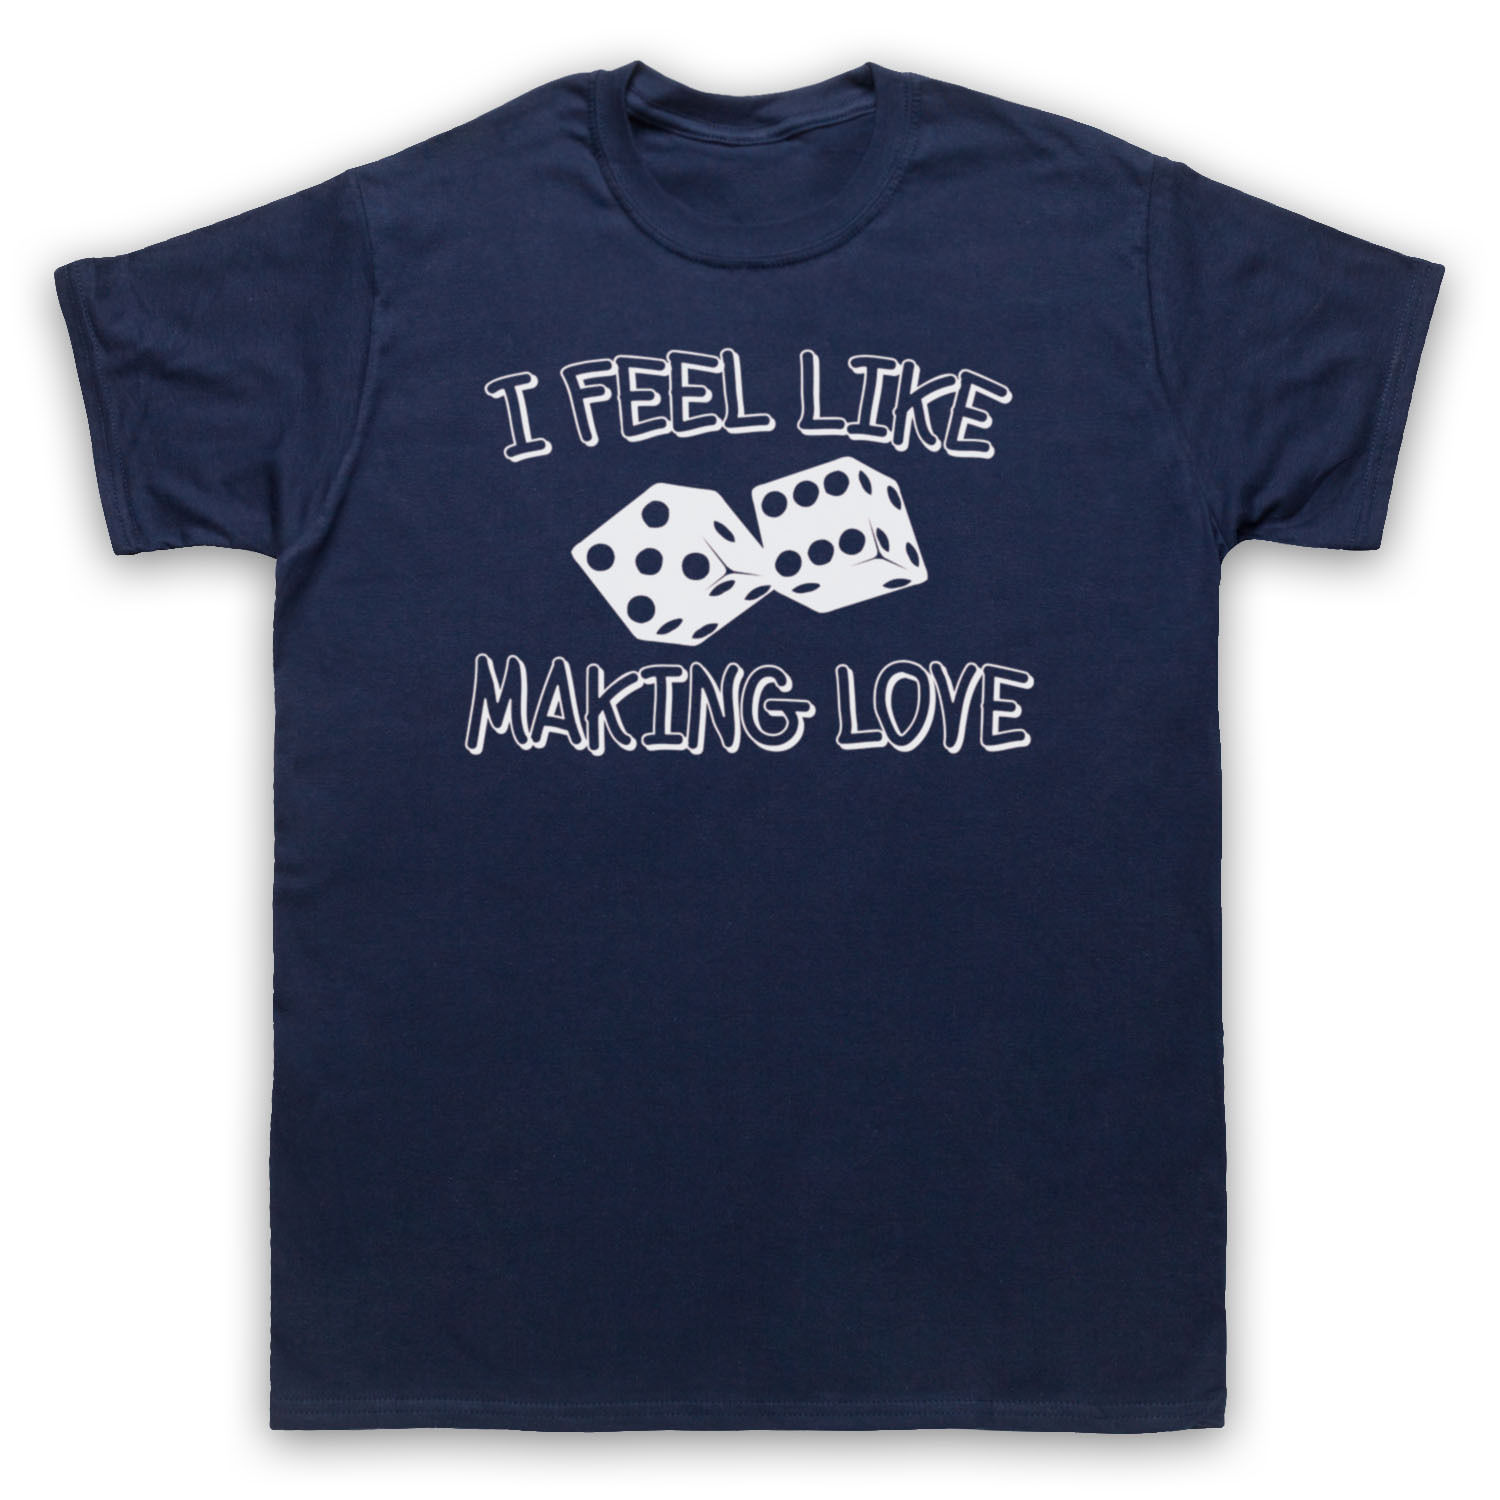 I FEEL LIKE MAKING LOVE BAD COMPANY UNOFFICIAL T-SHIRT MENS LADIES KIDS SIZES